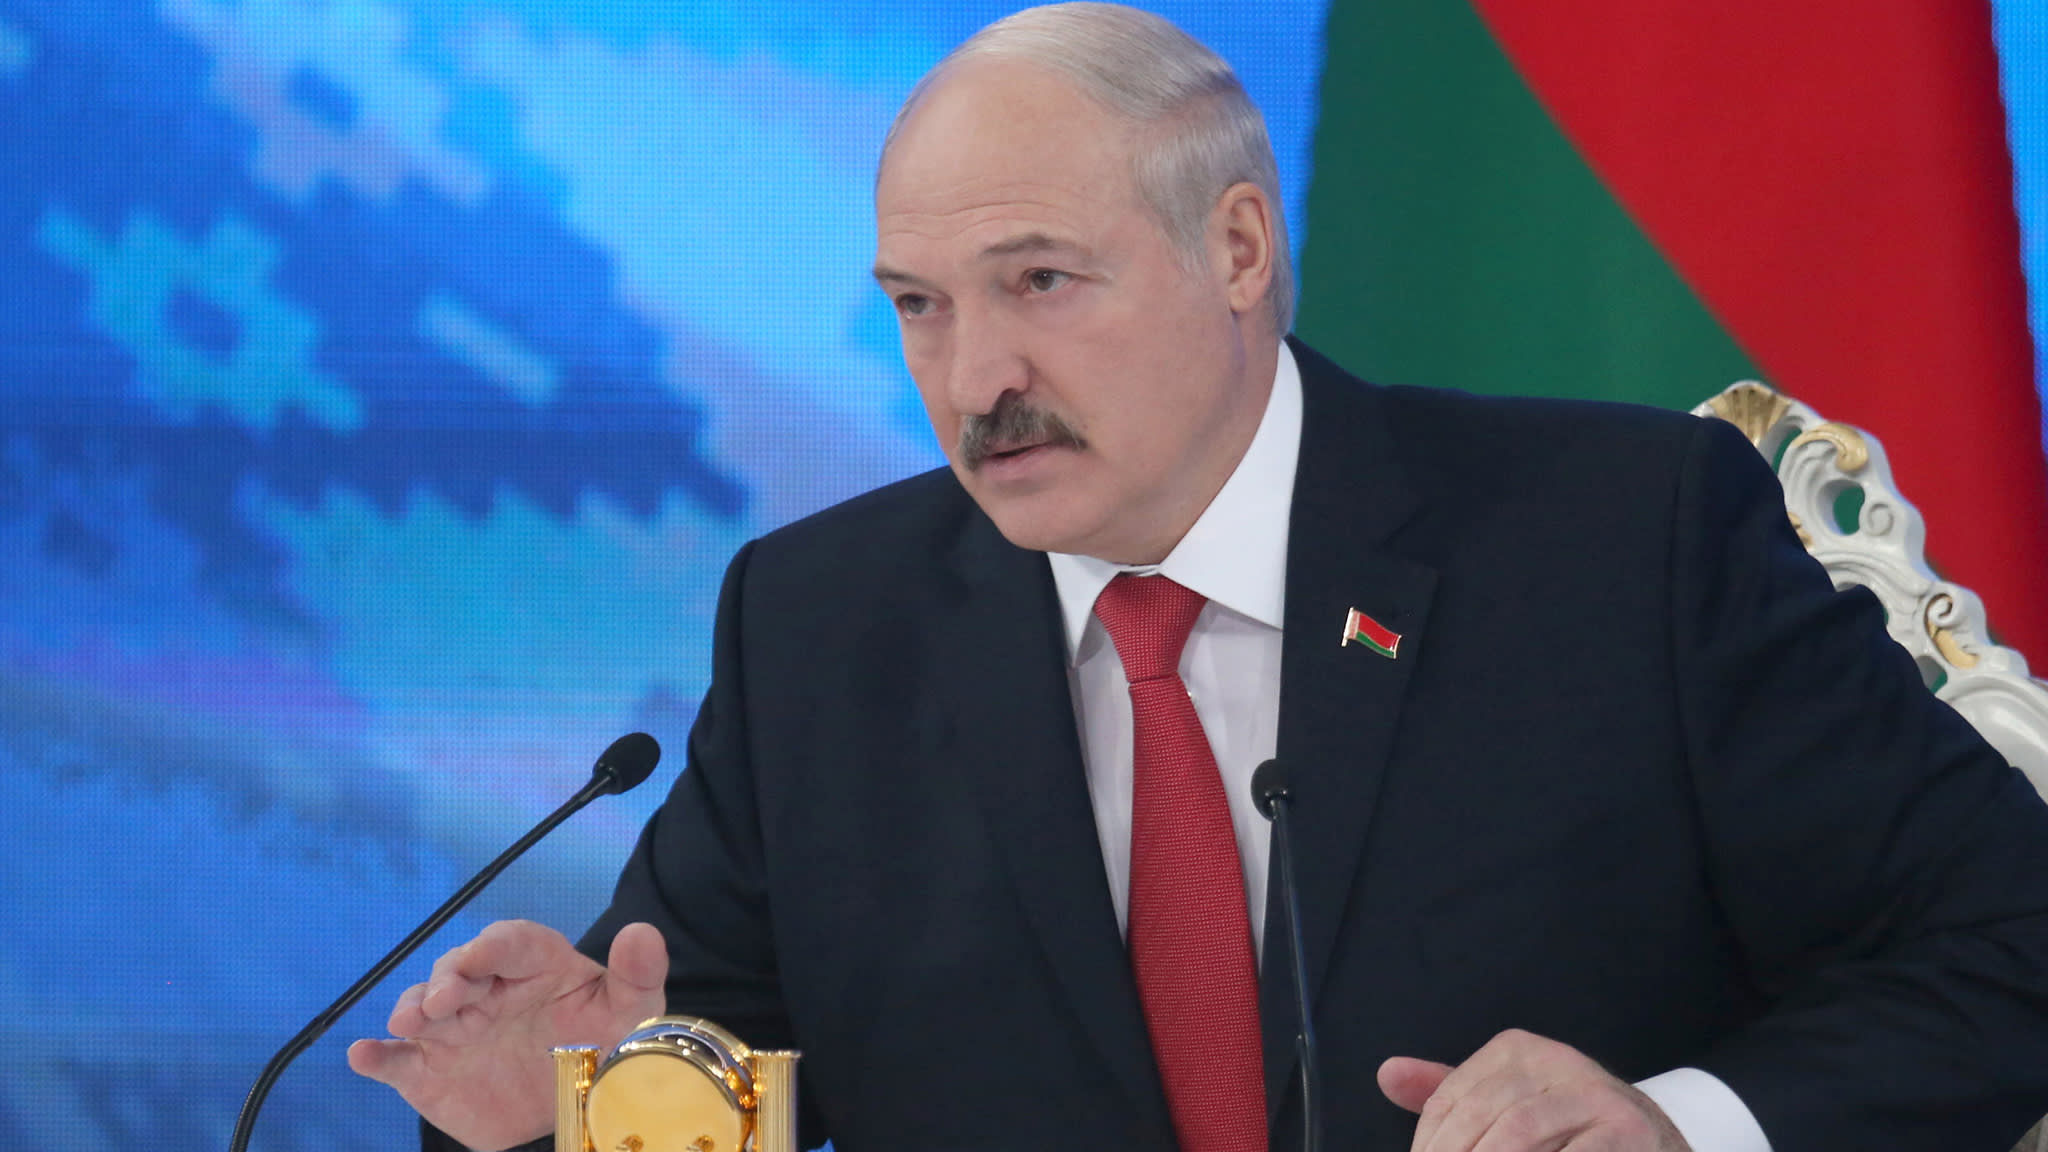 Belarus President Lukashenko blames protests on foreign spies | Financial Times